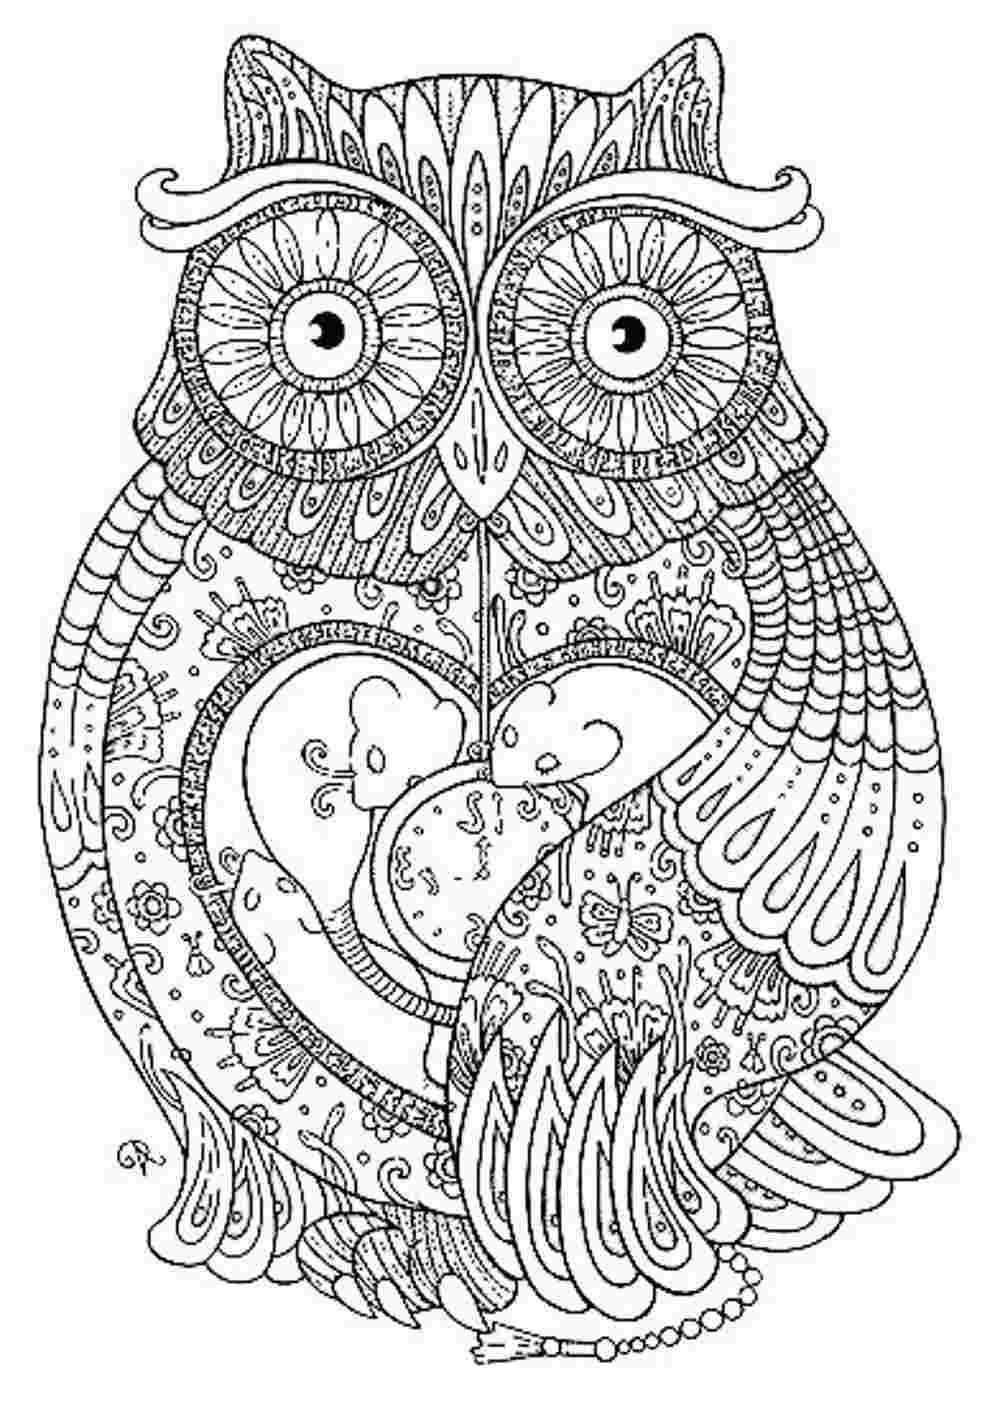 Animal Mandala Coloring Pages to and Print for Free Collection Of Modern Intricate Mandala Coloring Pages Coloring for Good Mandala to Print